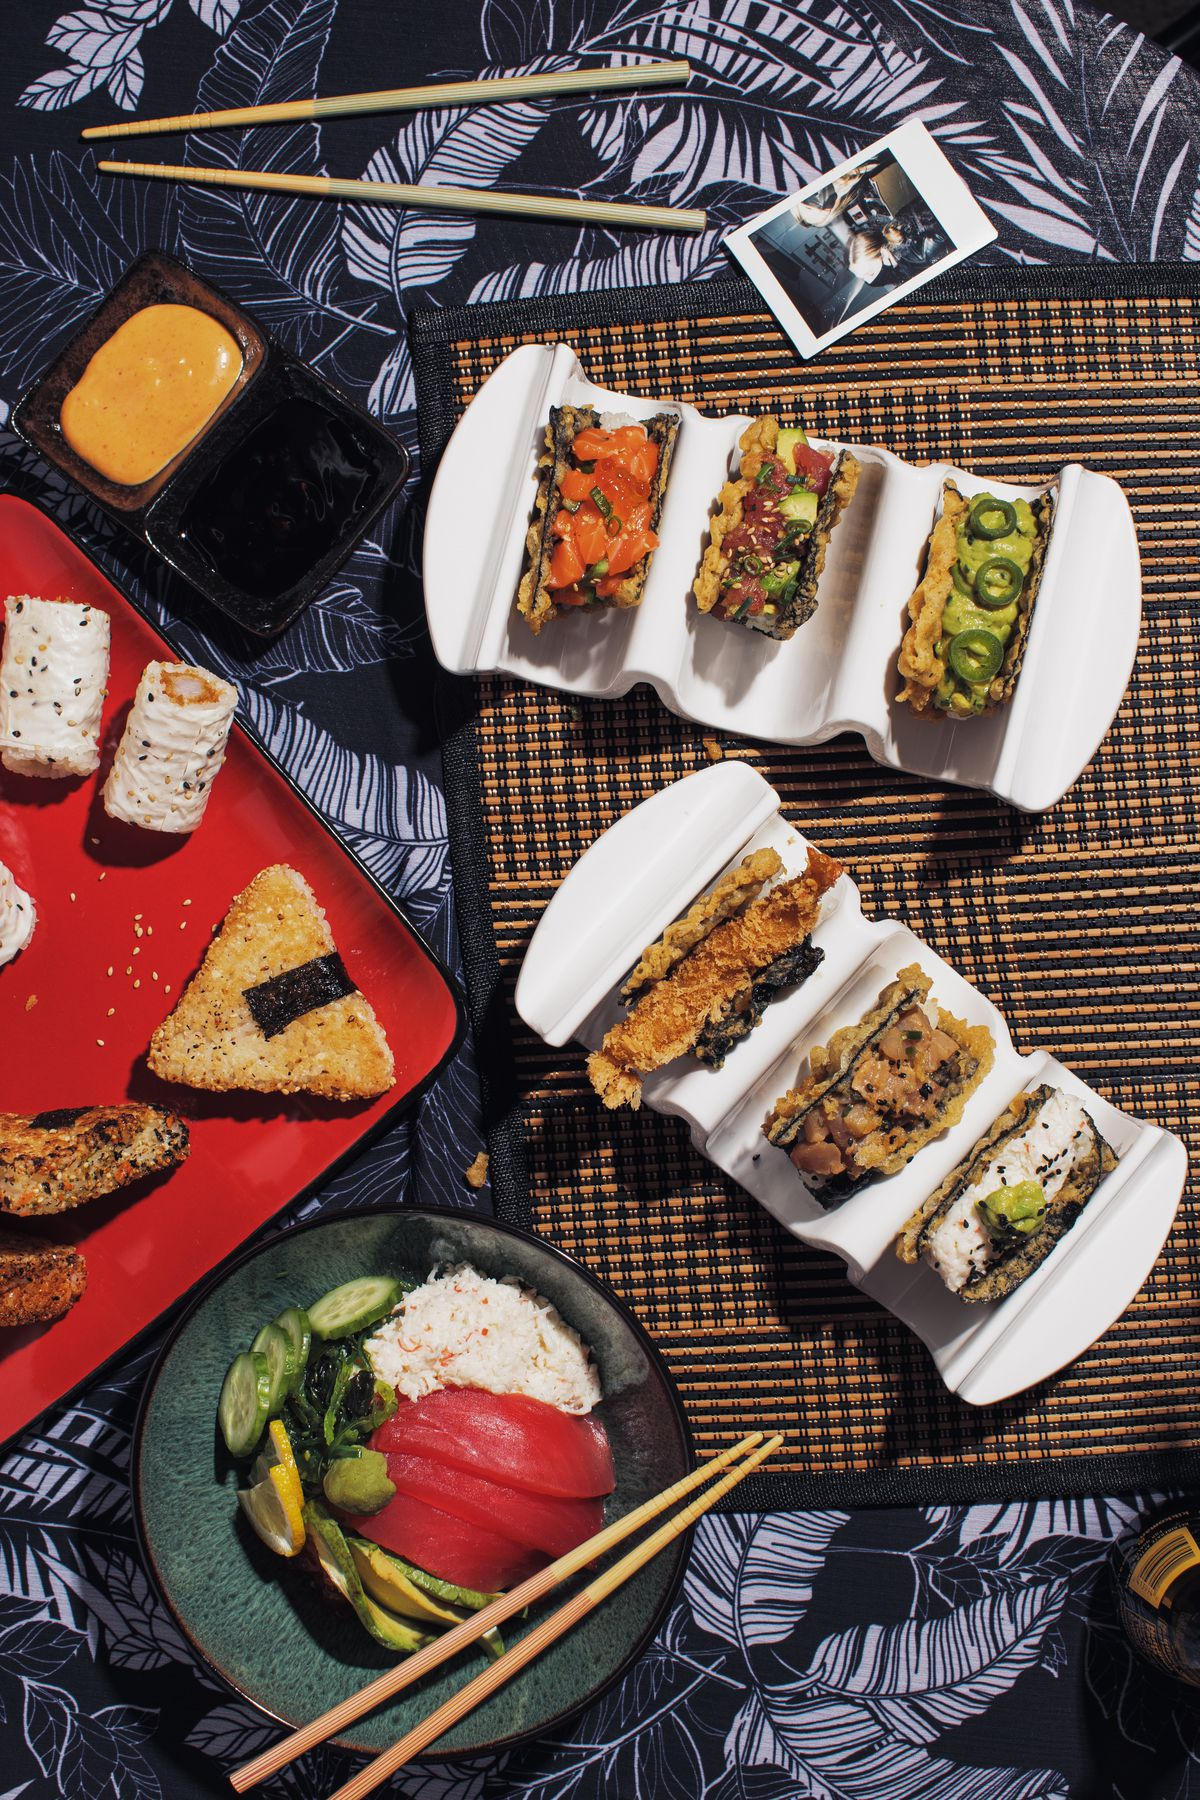 Table with sushi, nori rolls and other snacks from Kumi